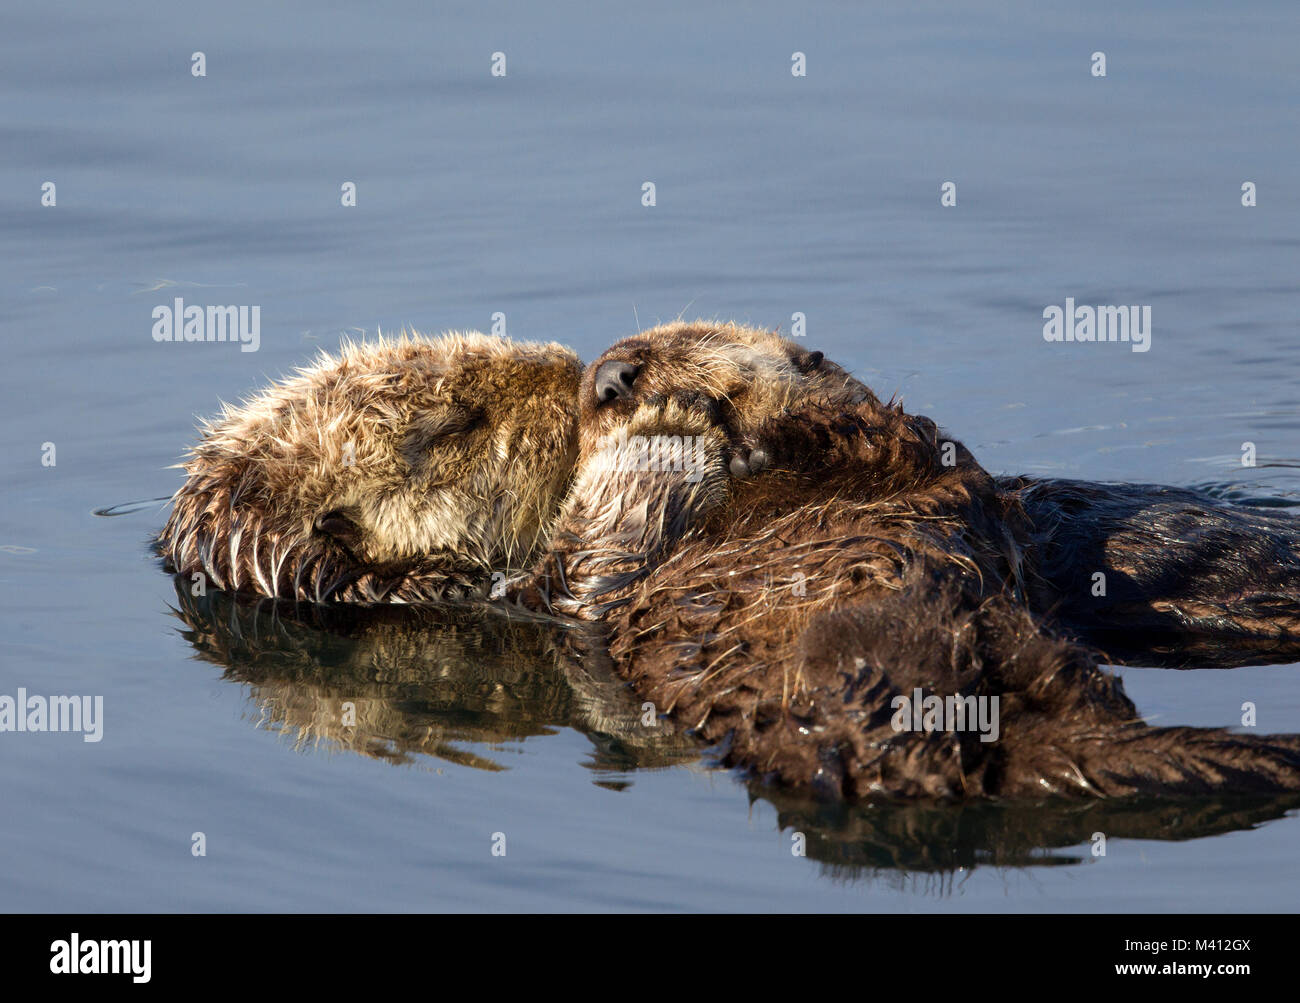 Sea Otter Adult and Pup - Stock Image